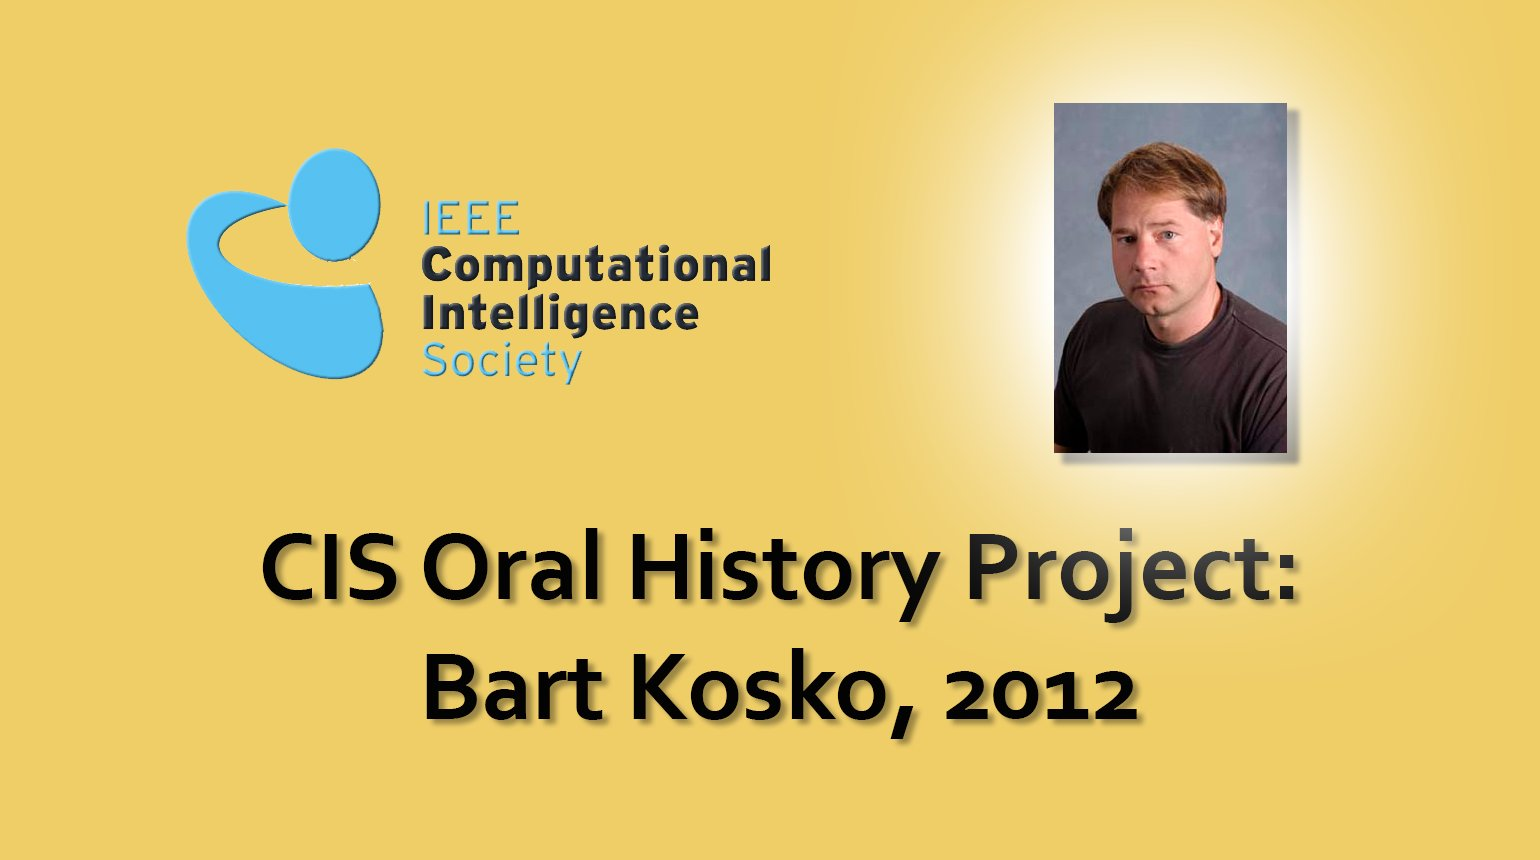 Interview with Bart Kosko, 2012: CIS Oral History Project